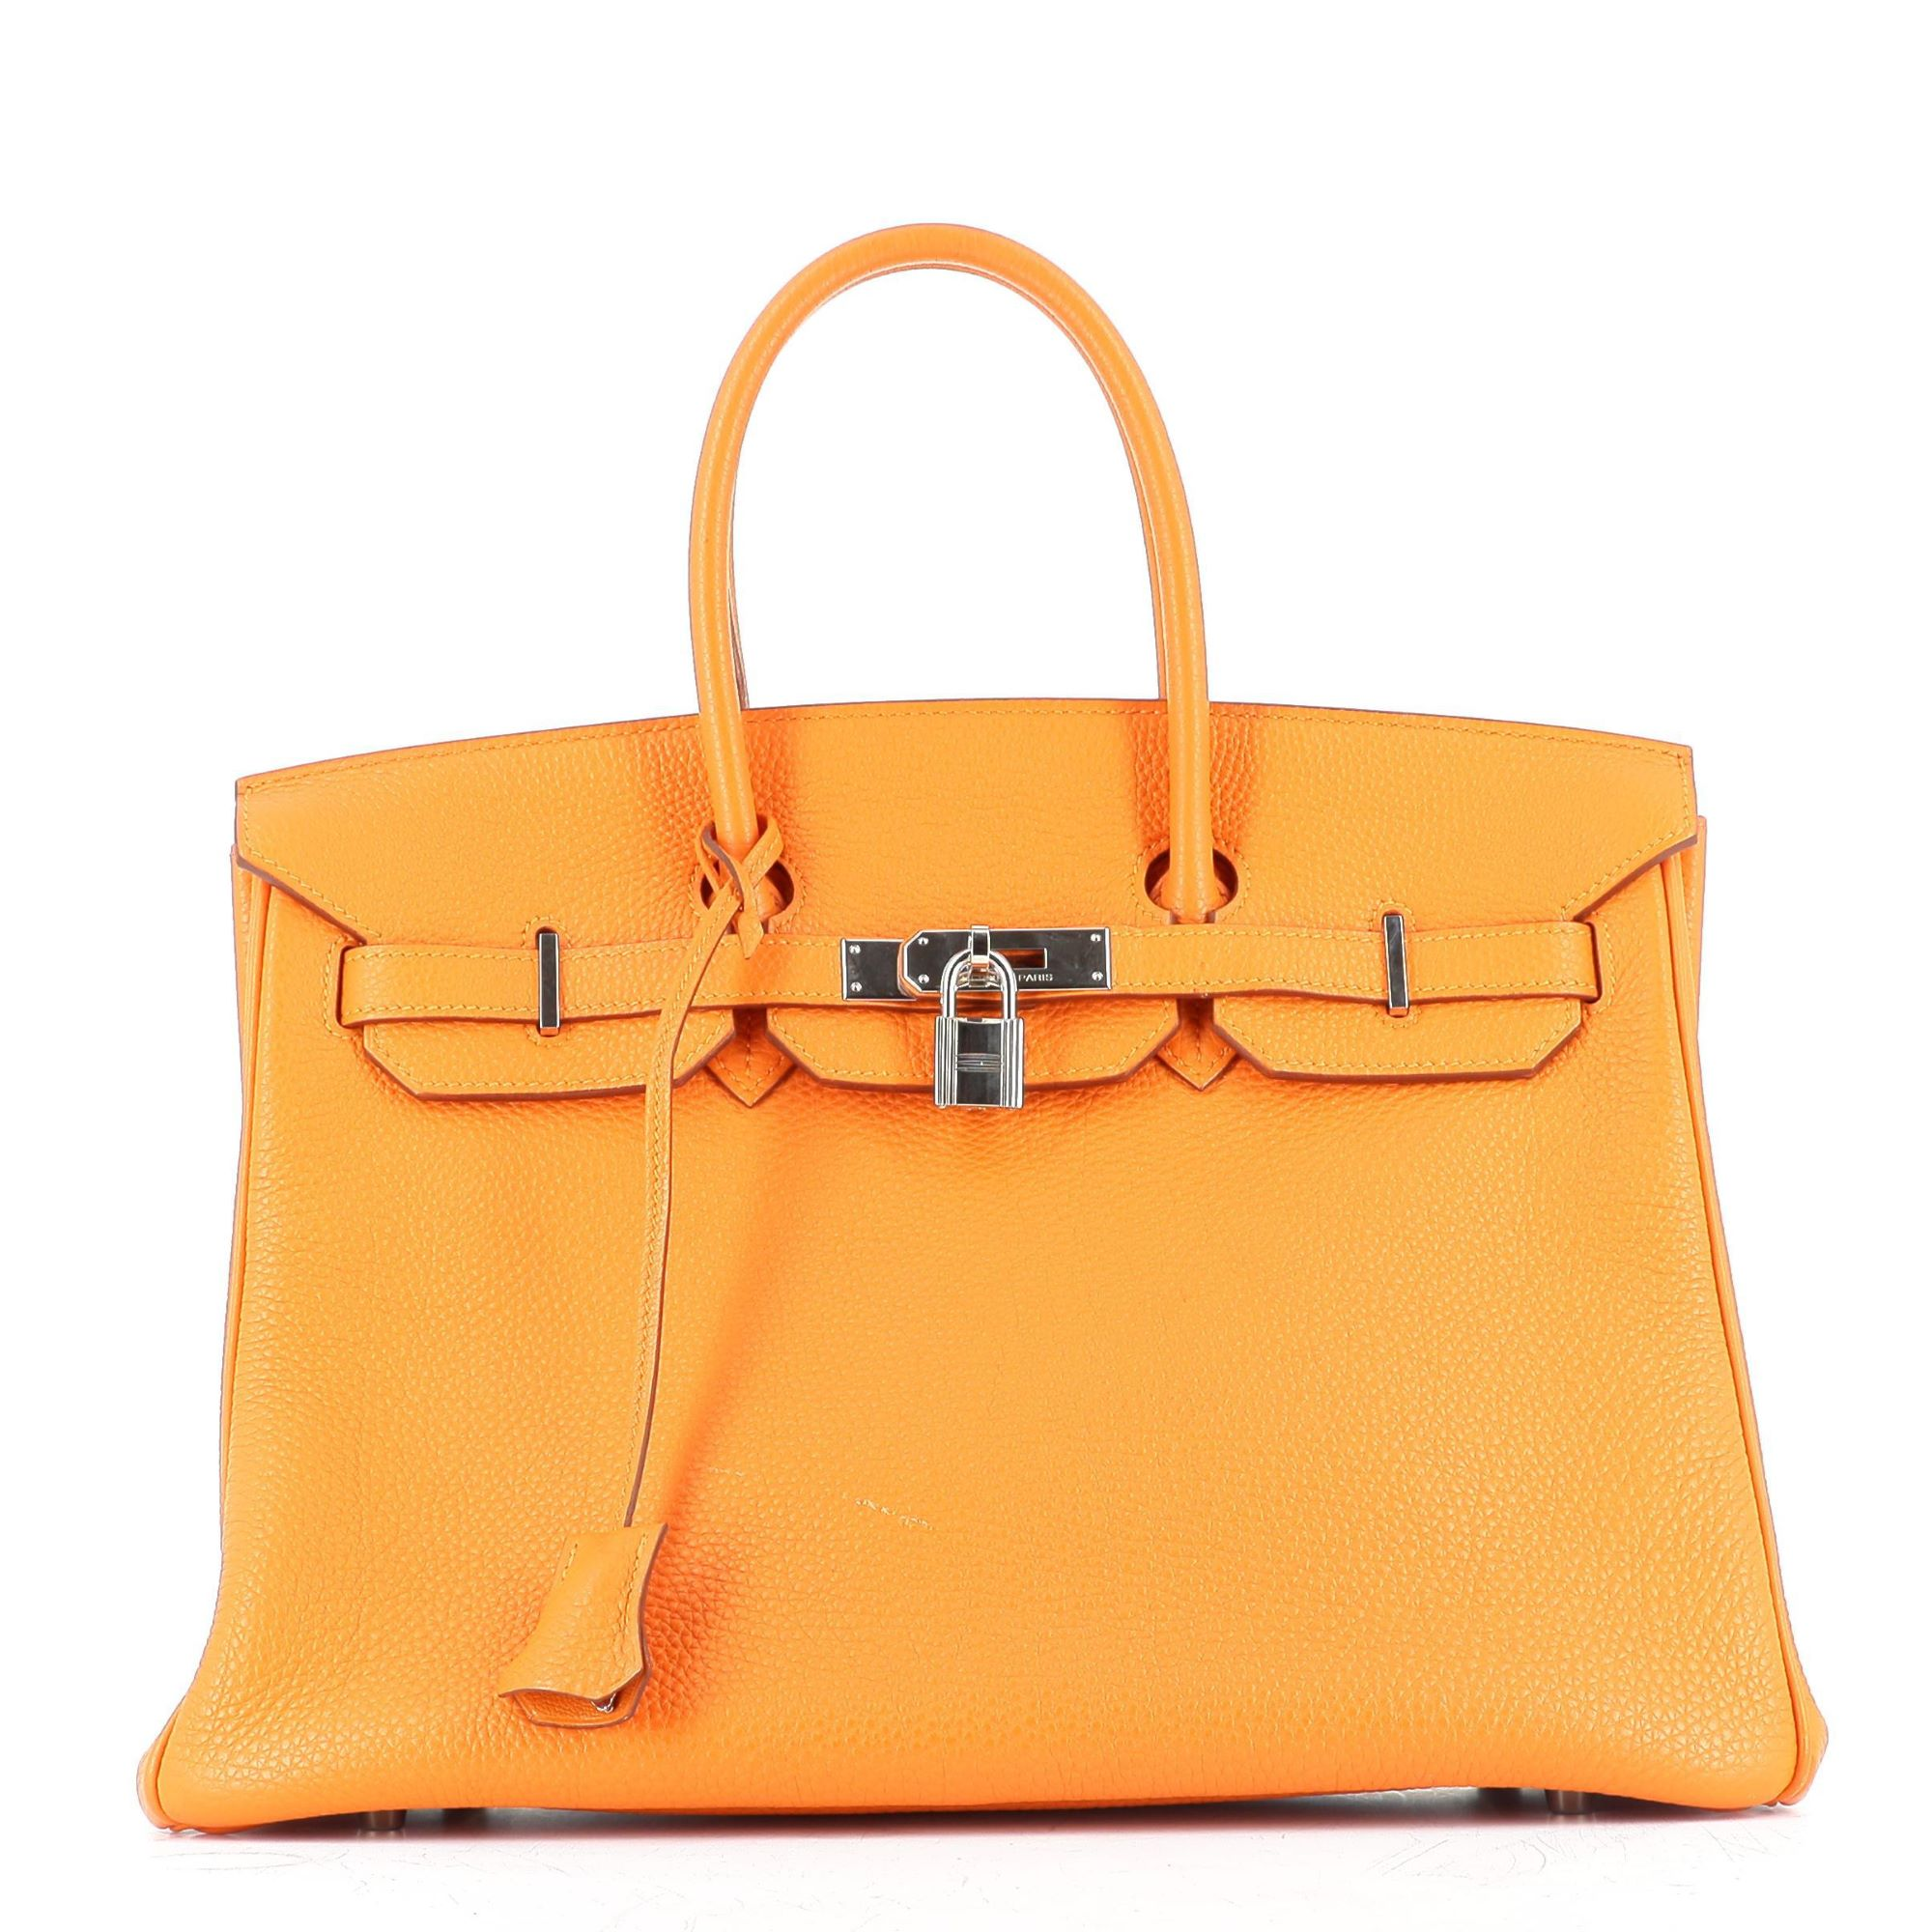 A picture containing accessory, bag, orange  Description automatically generated